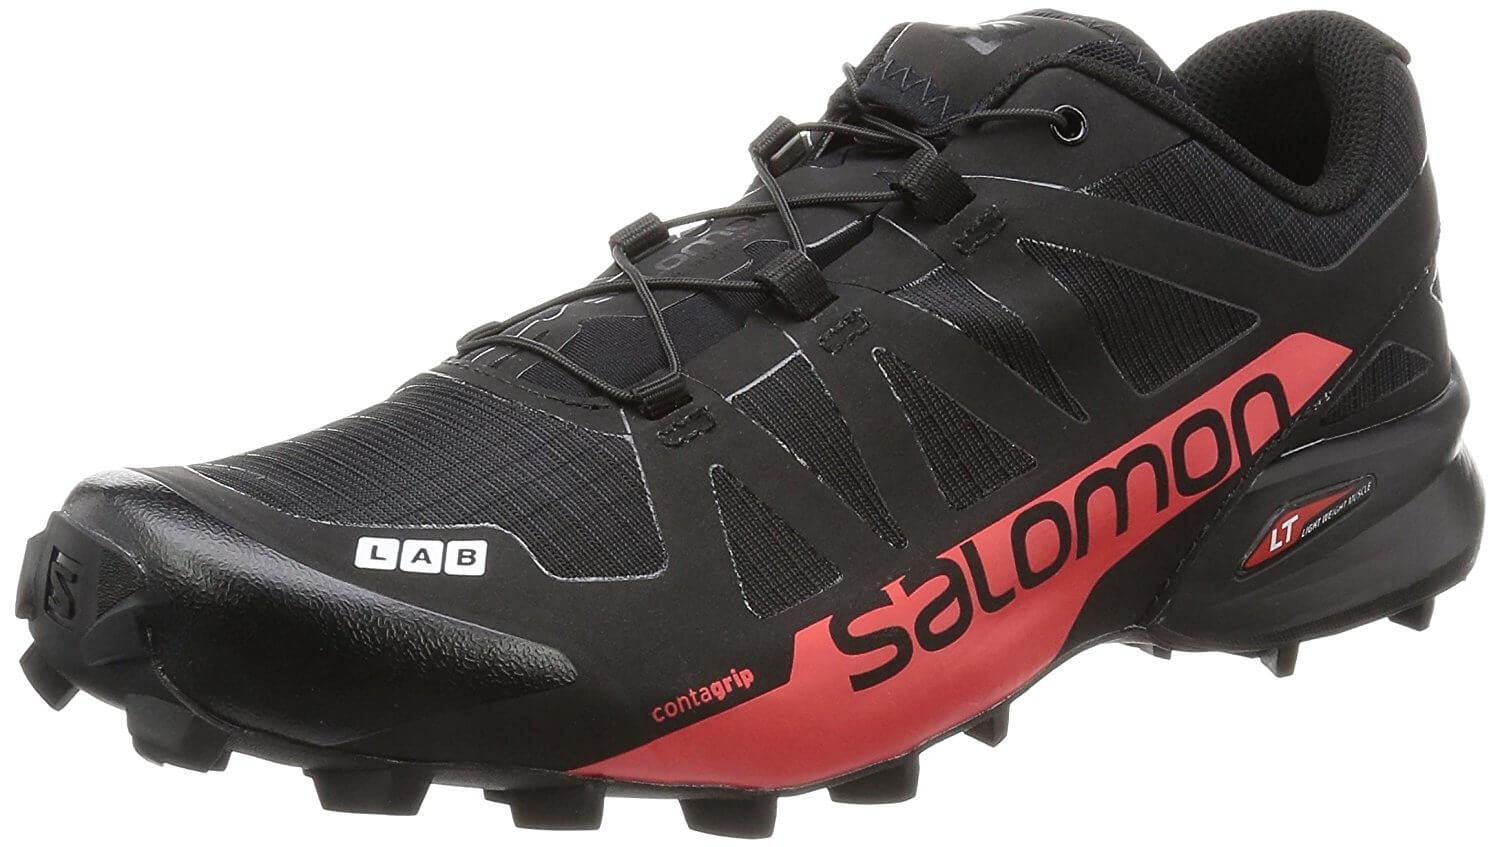 The Salomon S-Lab SpeedCross is a tough trail shoe for the extreme adventurer.